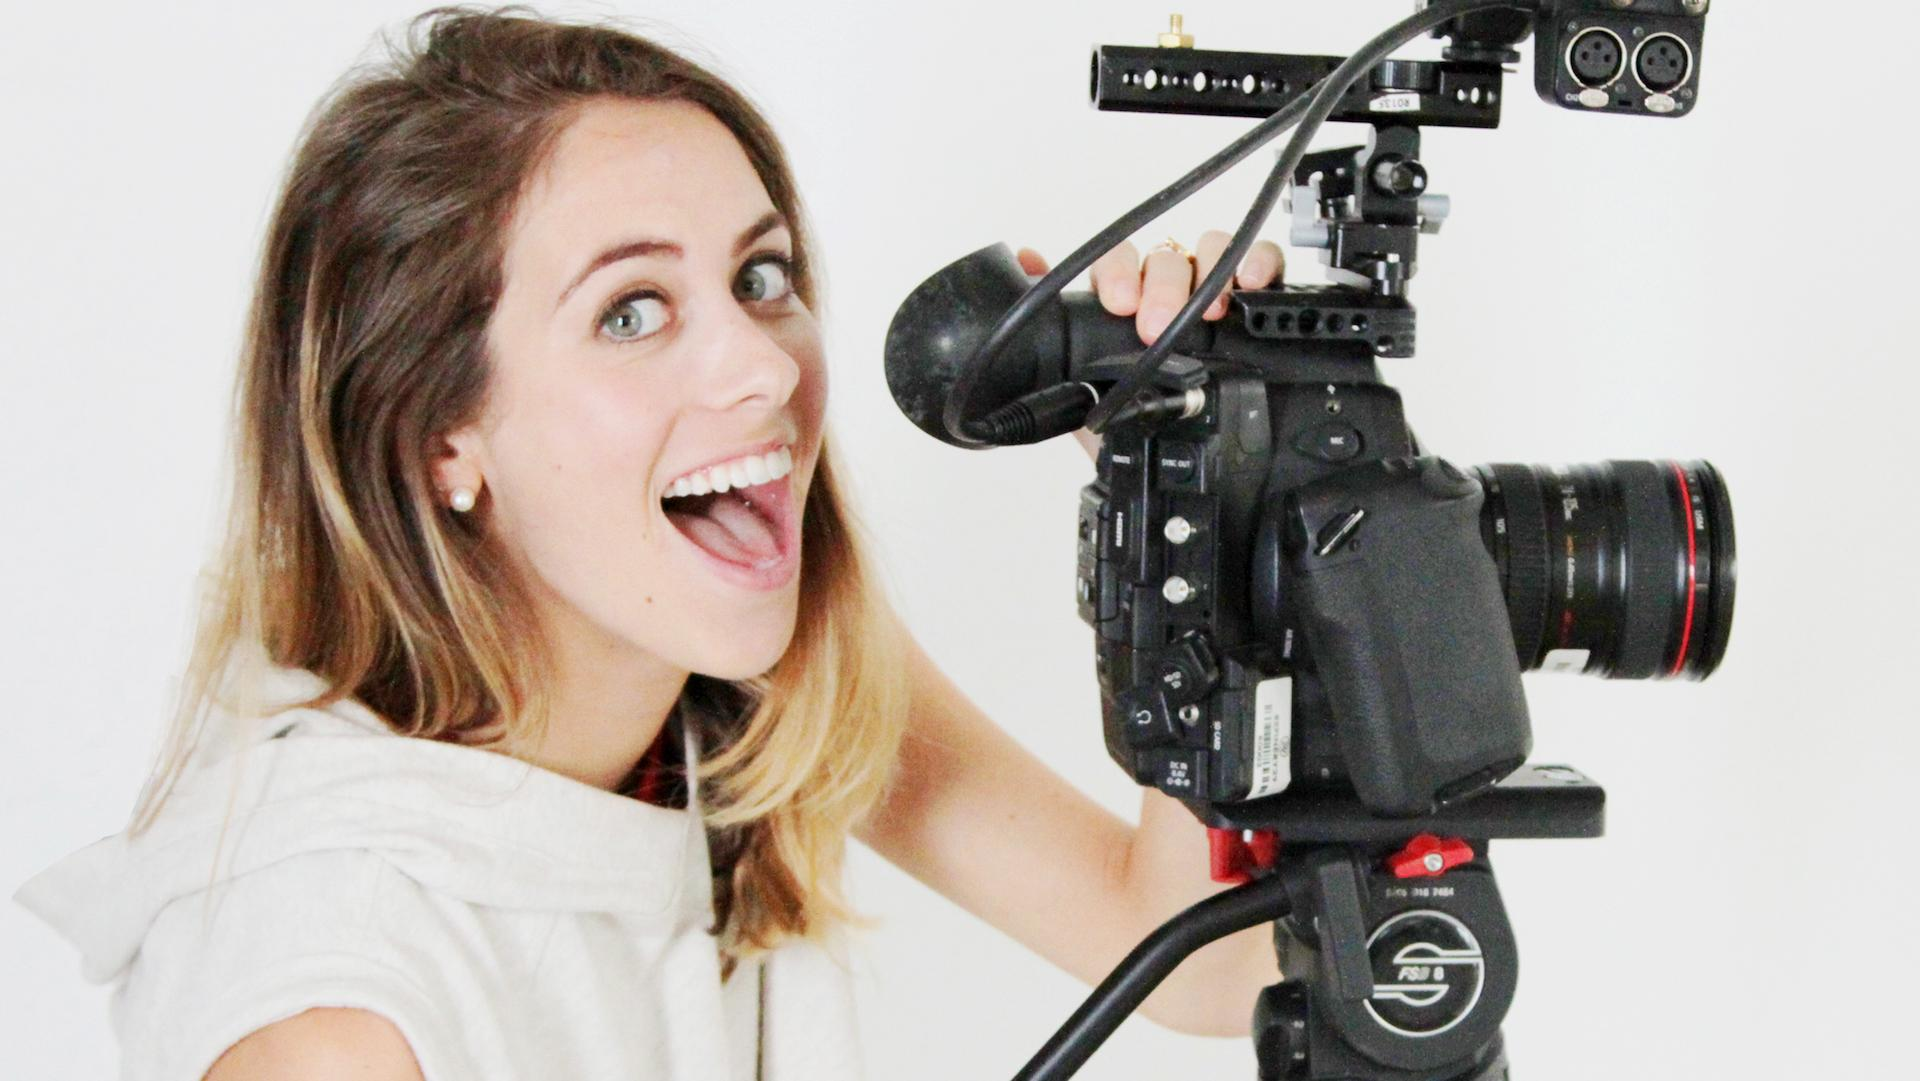 How Lucie Fink Became a YouTube Star